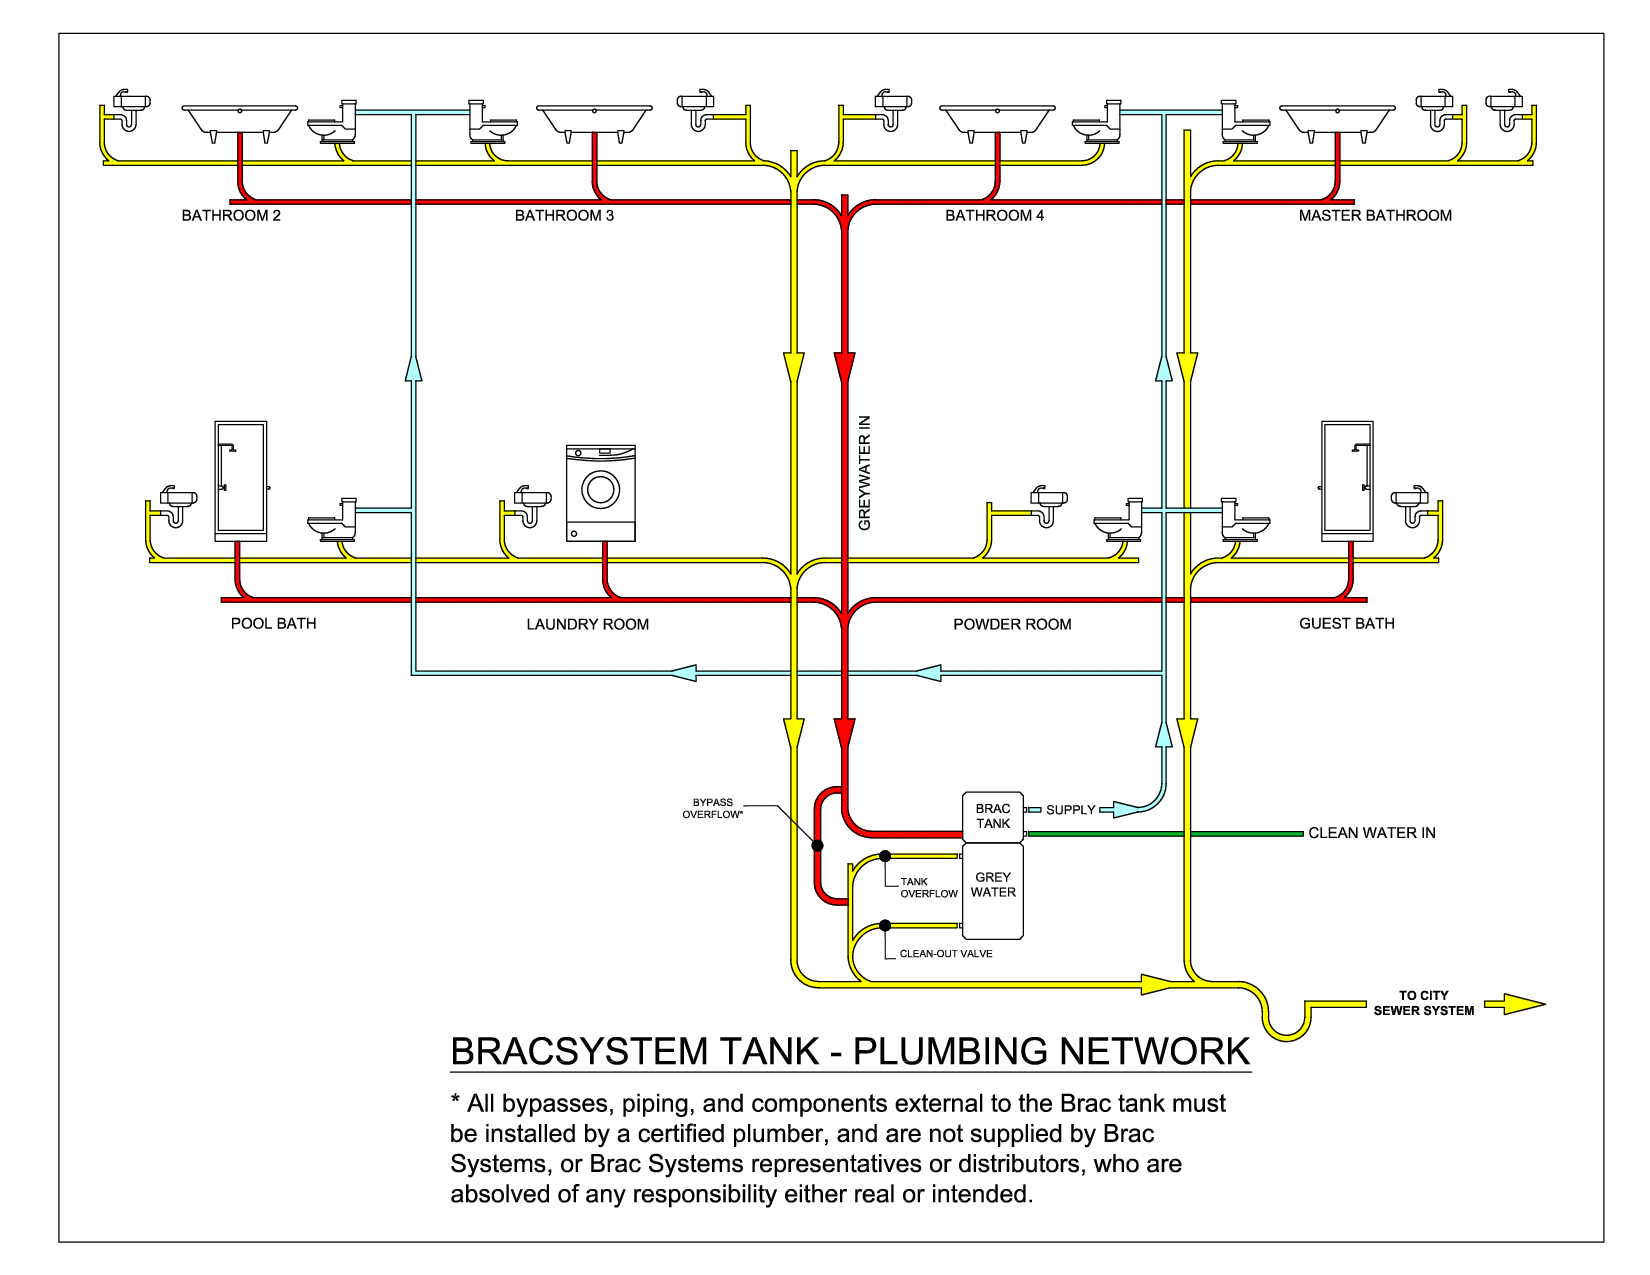 6a10db7de24186000f000aa7eded67b2 mobile home plumbing systems plumbing network diagram pdf Simple Wiring Schematics at gsmportal.co